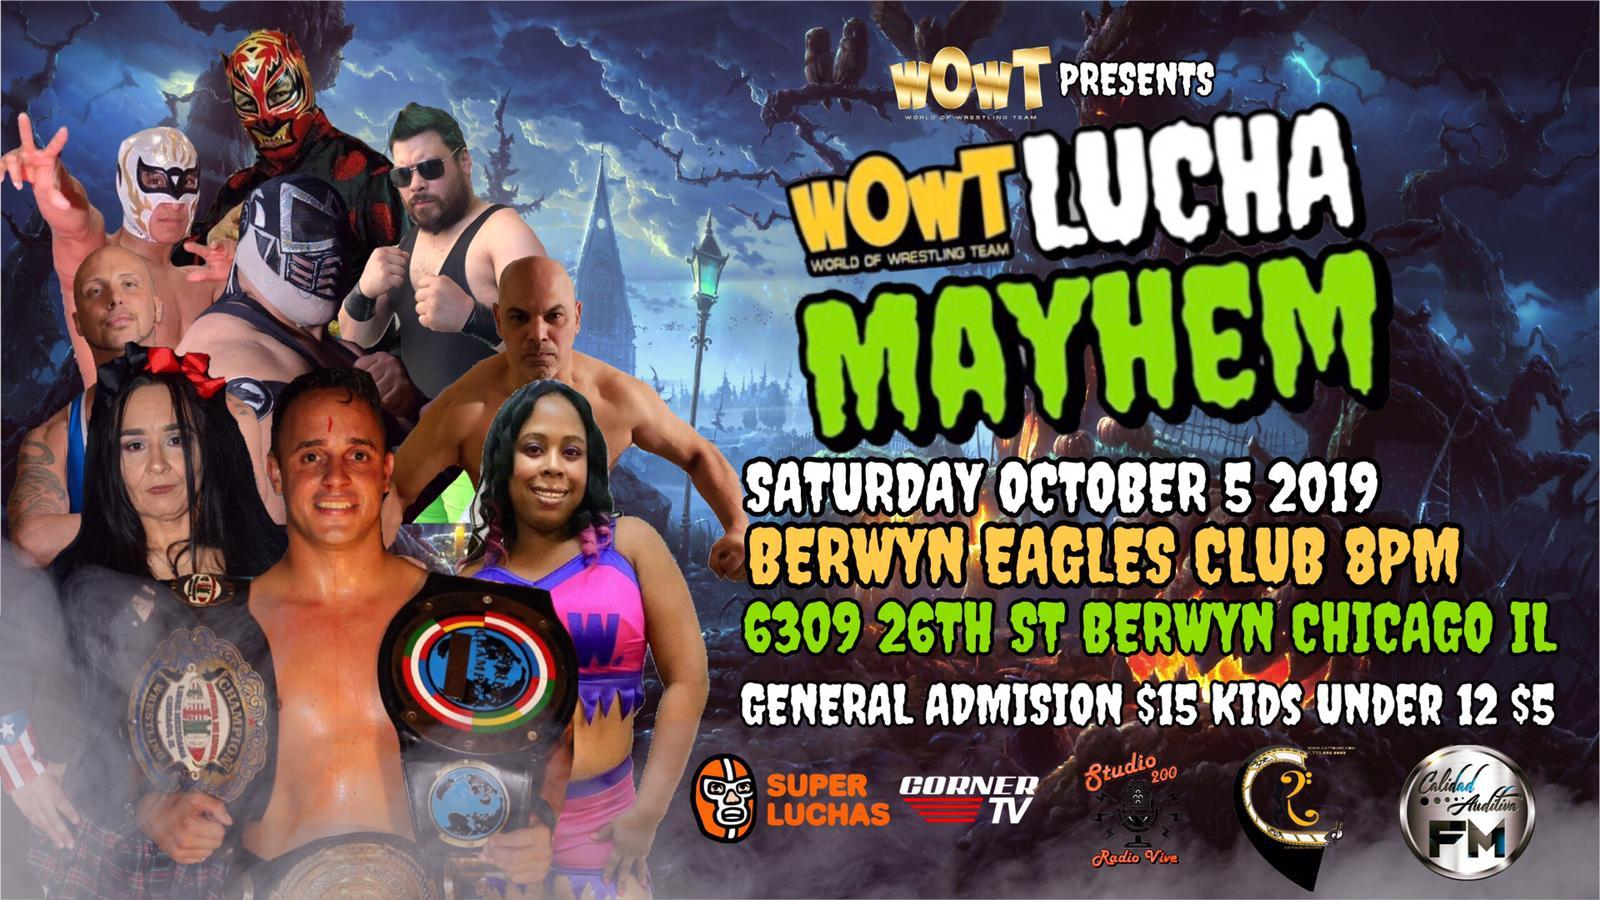 WOWT presenta Lucha Mayhem en el Berwyn Eagles Club en Chicago 1